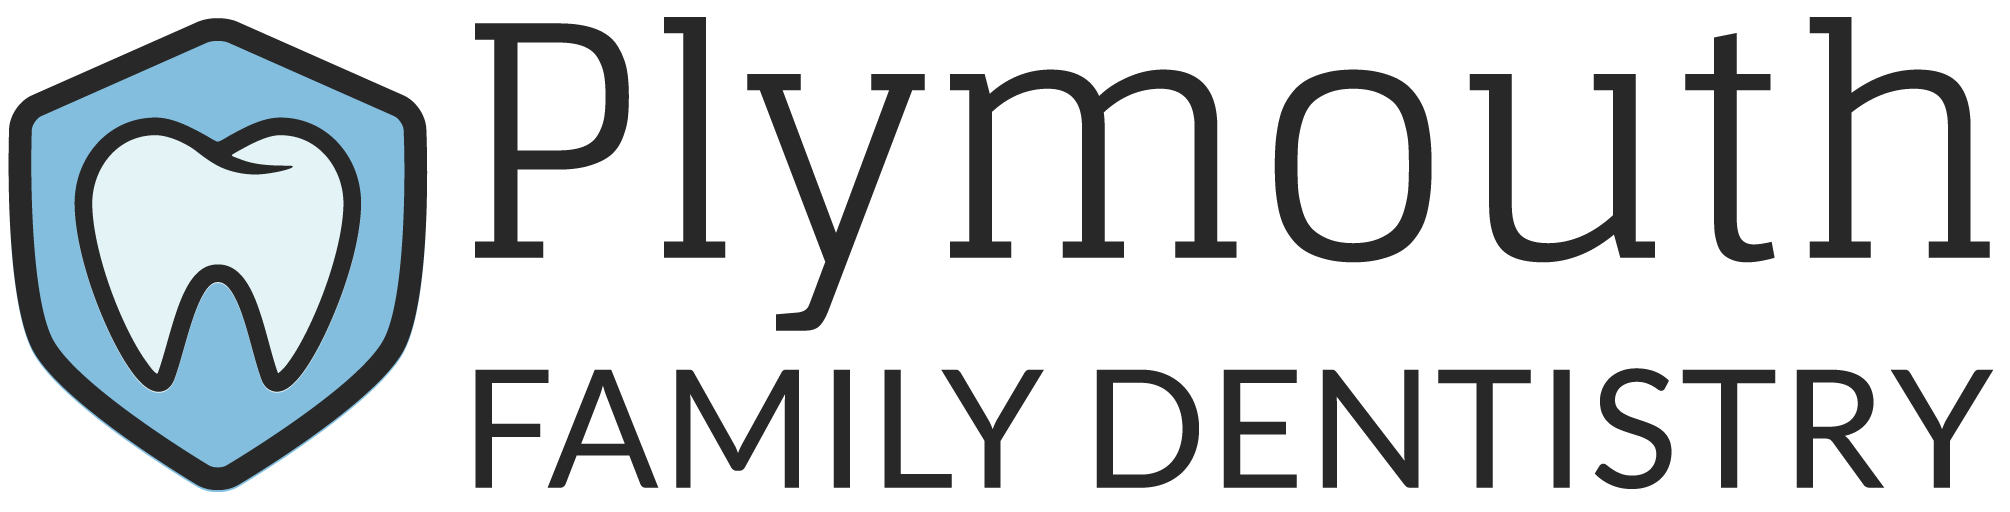 plymouth family dentistry logo